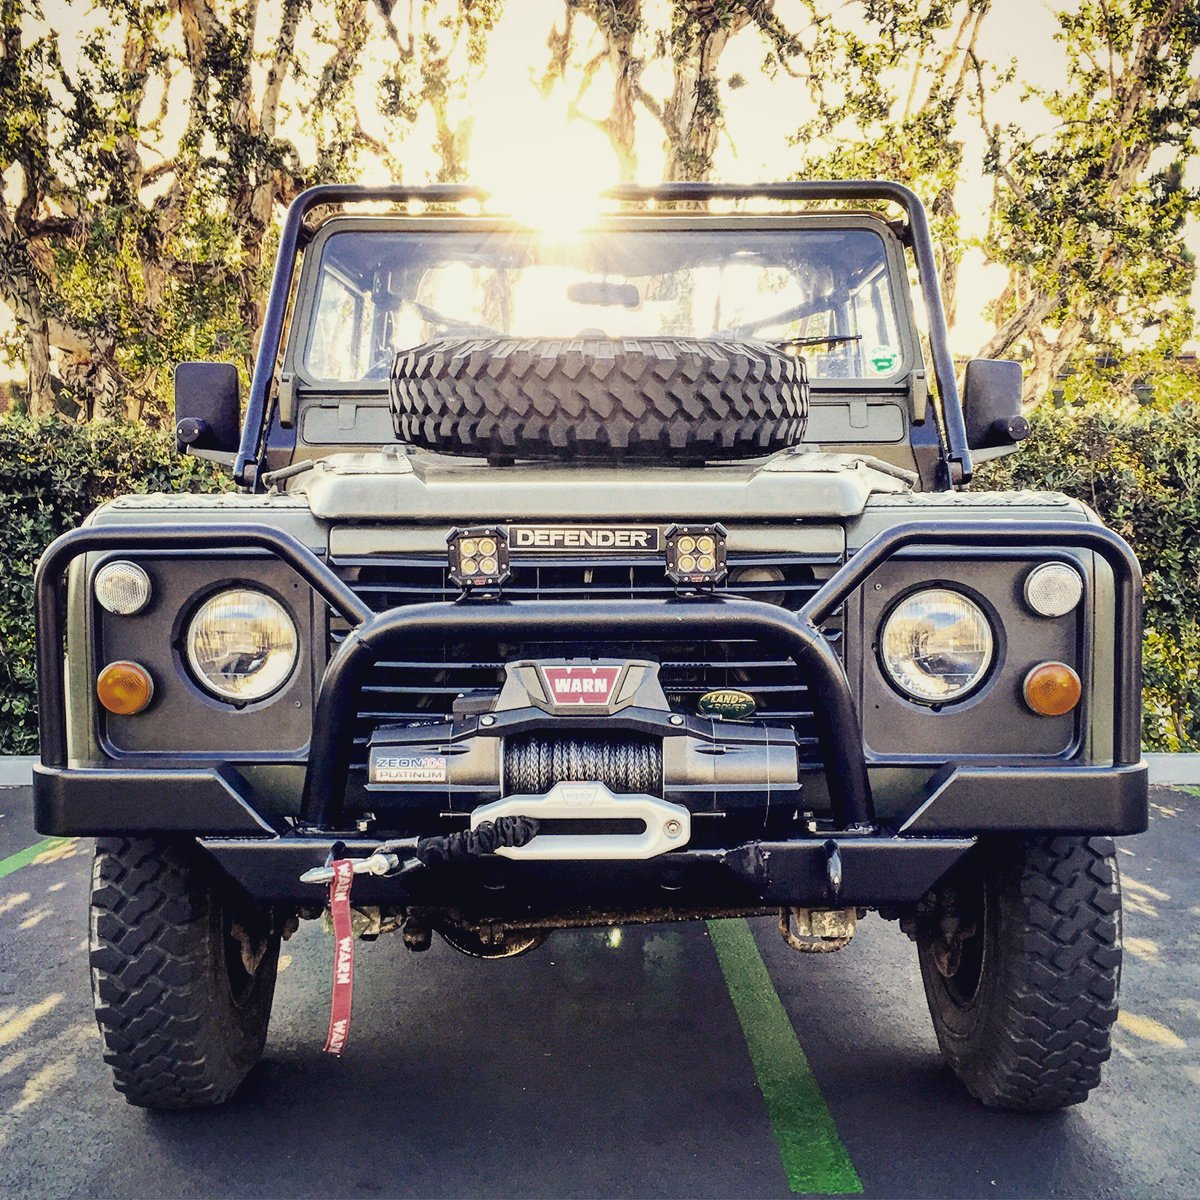 Old-school cool meets high-tech innovation: Defender + WARN ZEON Platinum & LED Lights. via @NickJaynes #GOPREPARED https://t.co/bR6AombDaS